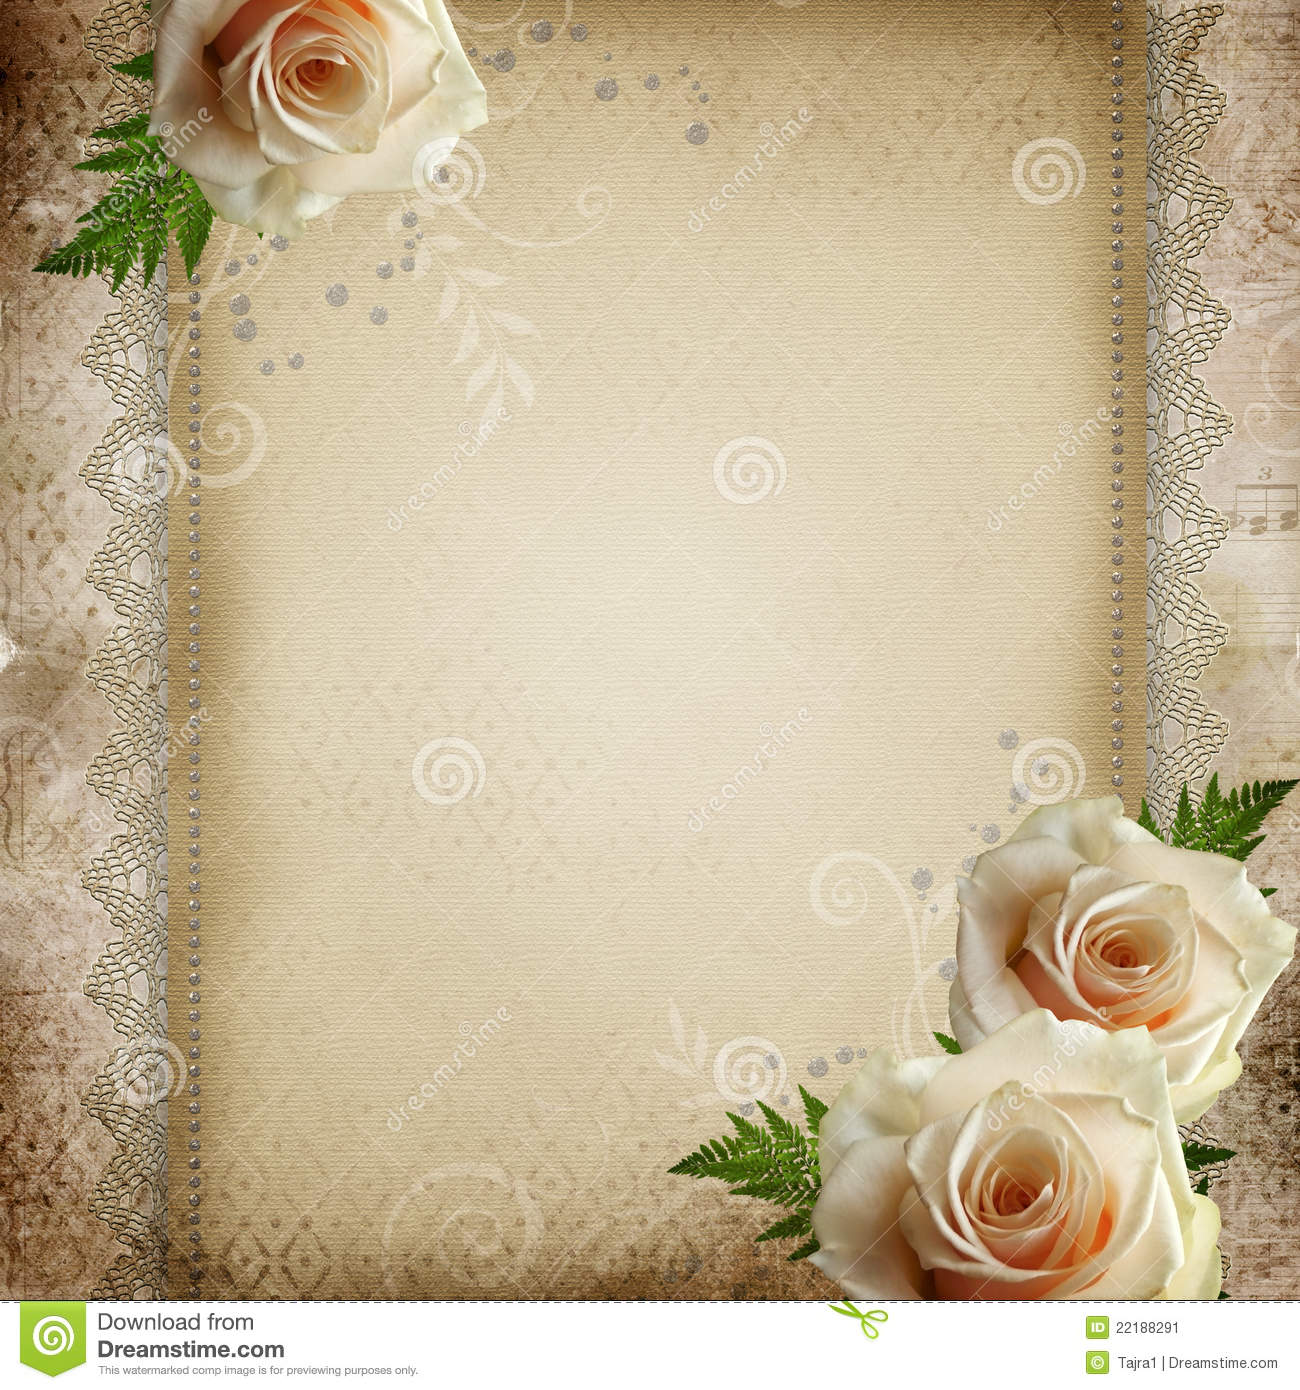 Vintage Beautiful Background Stock Image - Image: 22188291